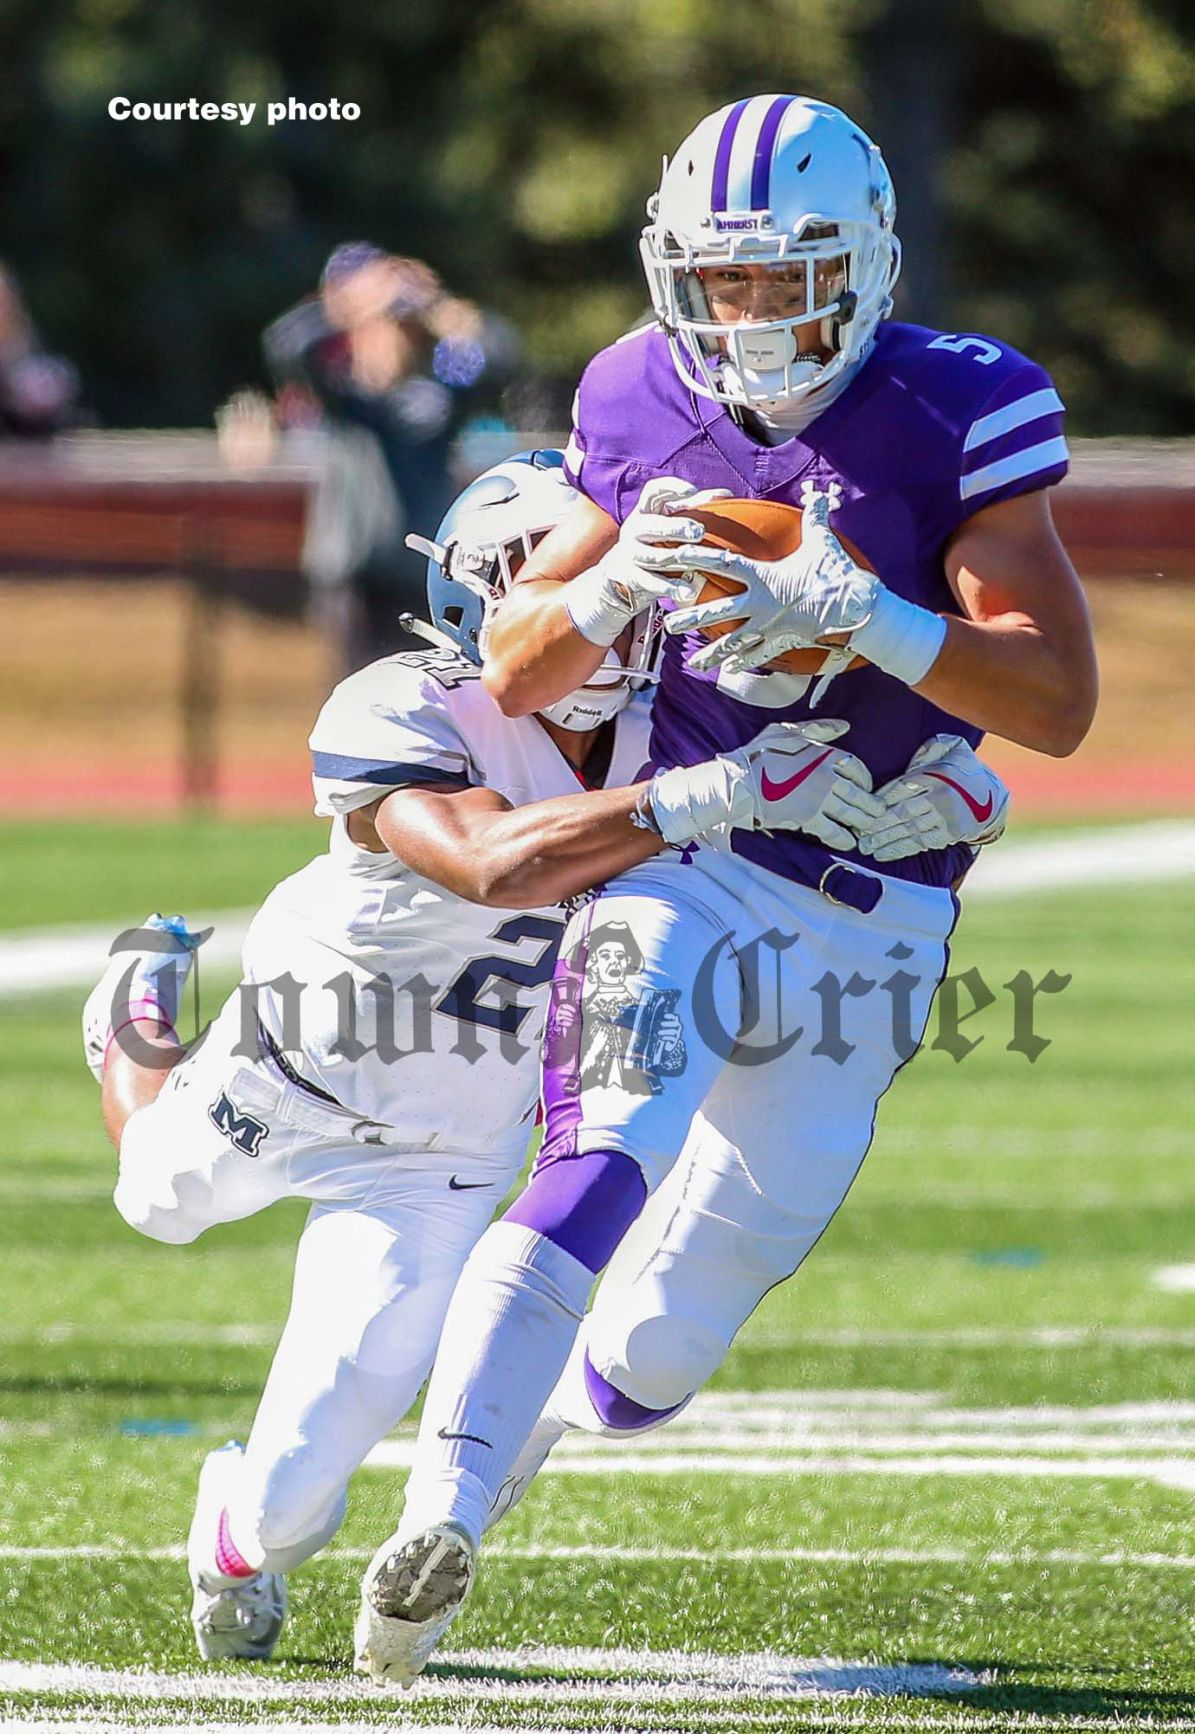 James O'Regan makes a catch for Amherst College